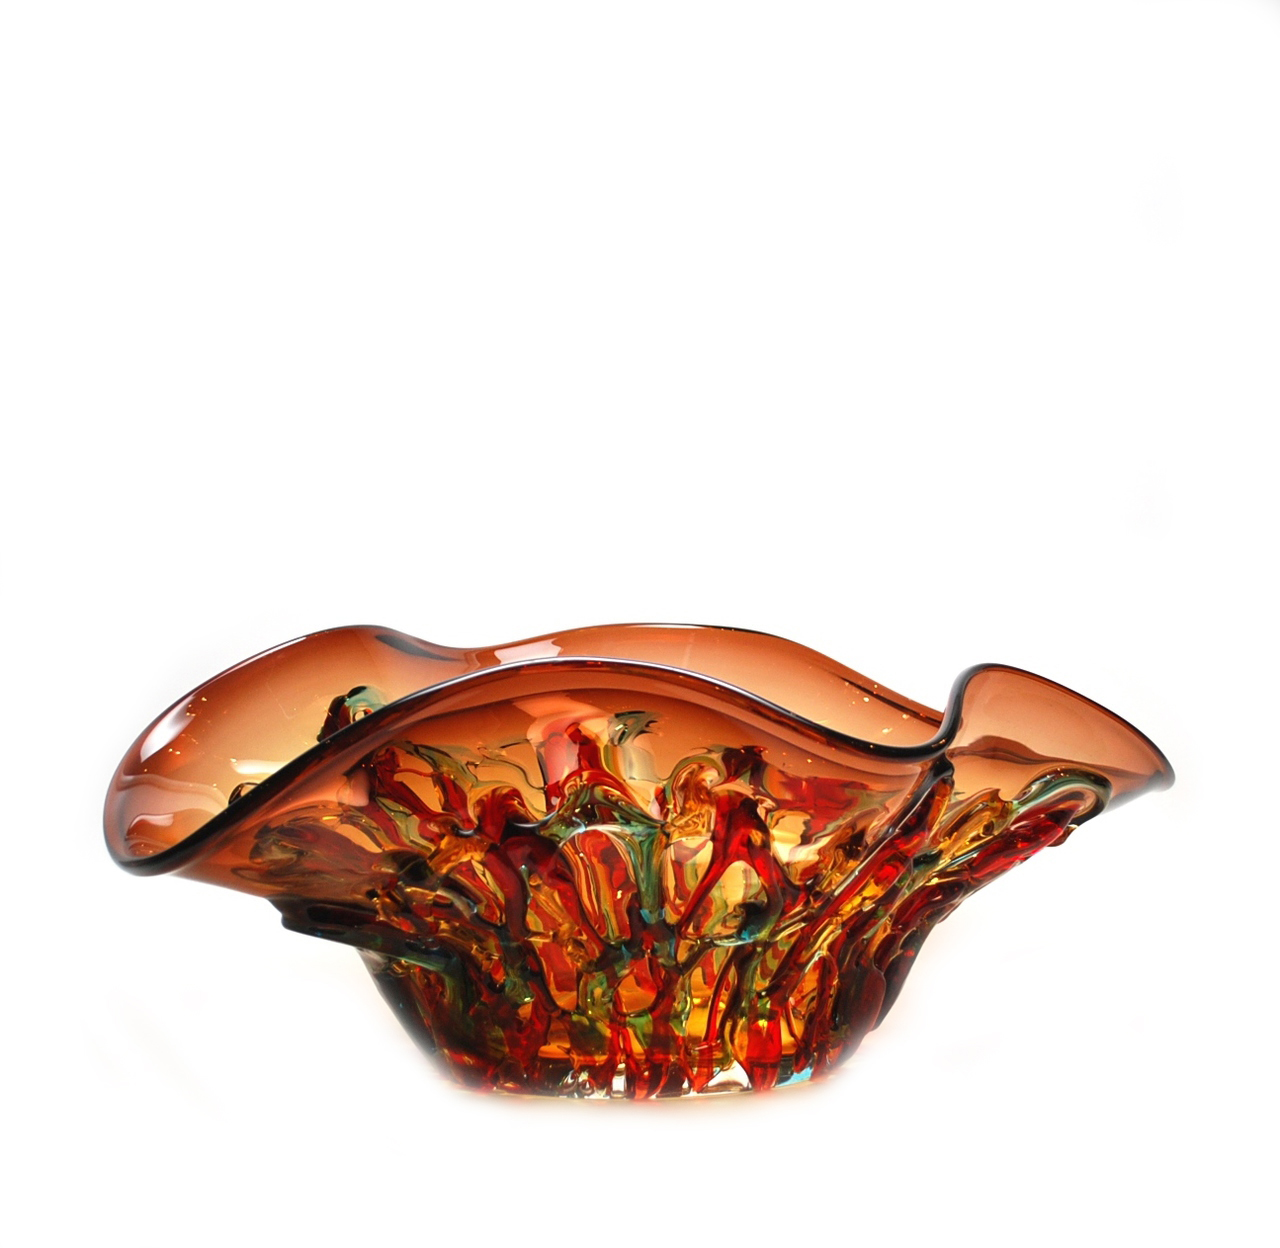 murano glass bowls & centerpieces